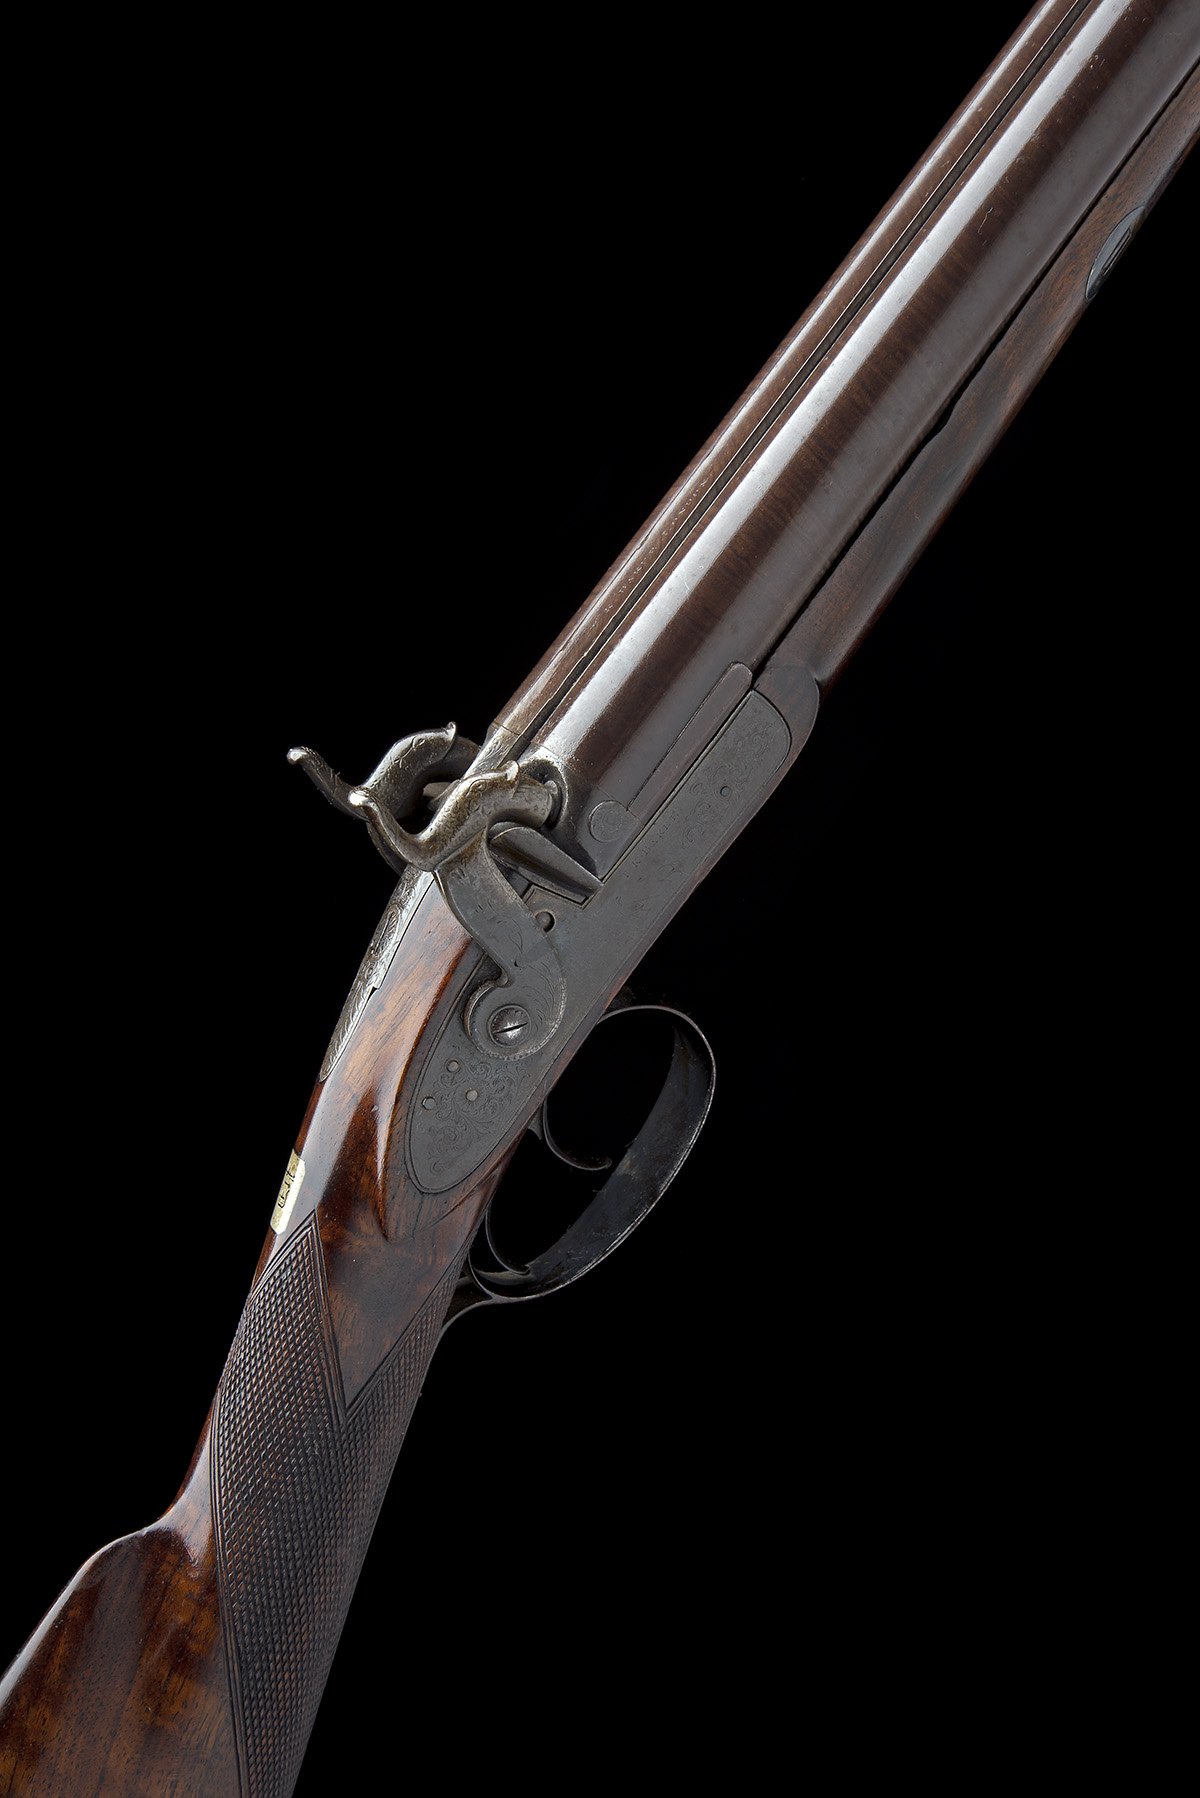 T.K. BAKER, LONDON A 10-BORE PERCUSSION DOUBLE-BARRELLED SPORTING-GUN, no visible serial number,